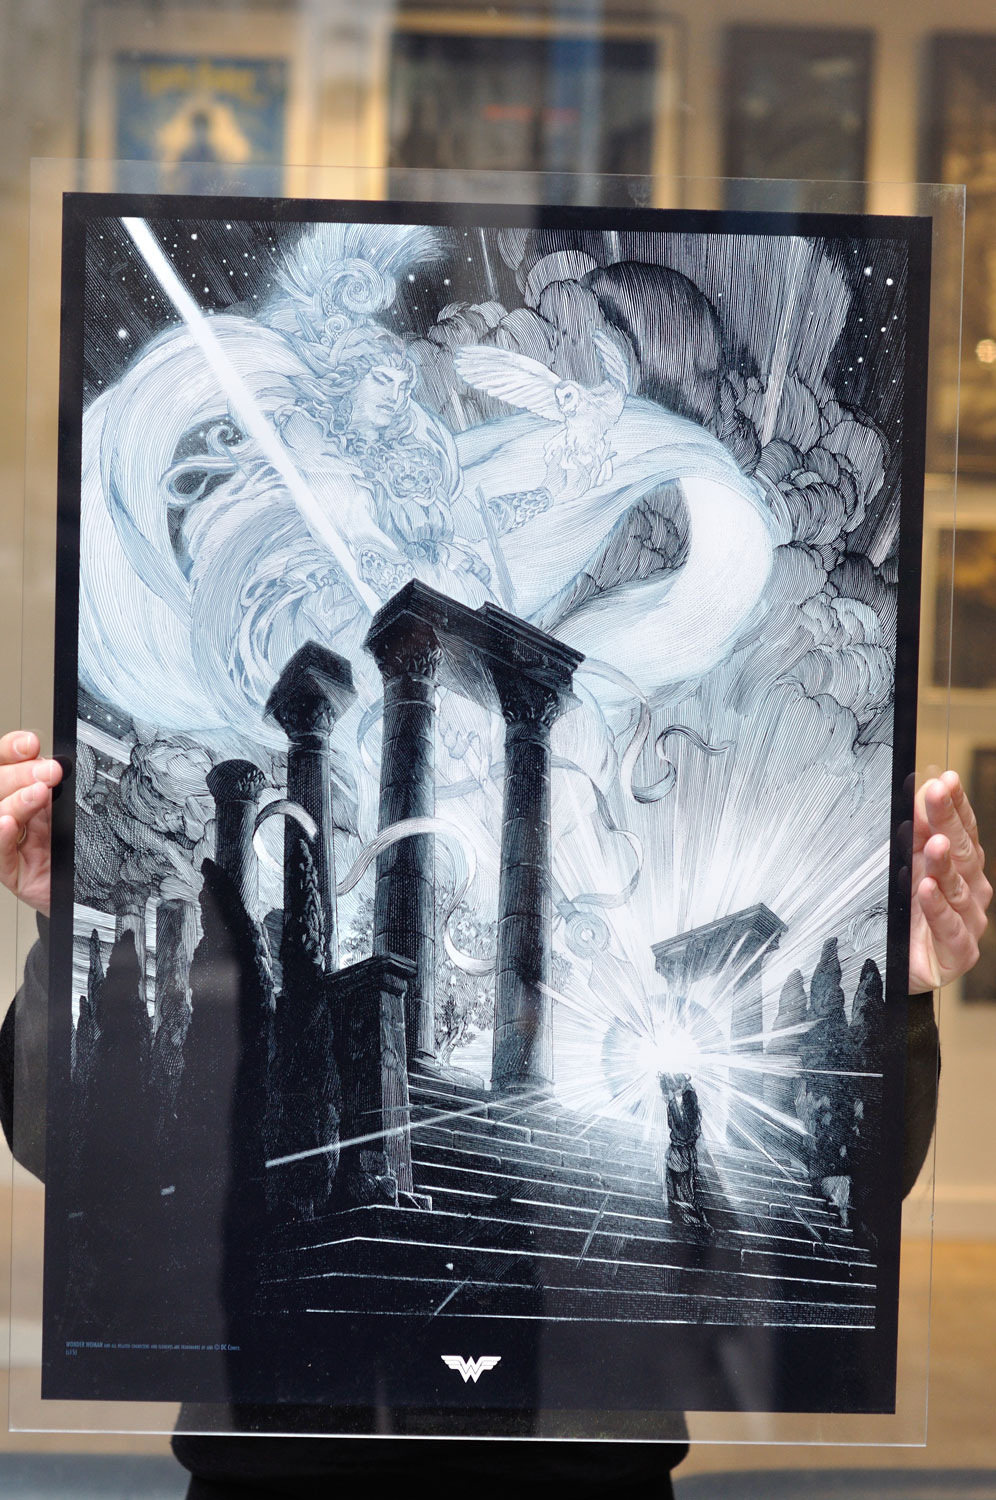 """""""The Blessing of Athena"""" by Nicolas Delort.  54 x 74cm 3-color Screenprint w/ pearl blue.  Ed of 10 S/N.  350 Euros ($378) (Plexiglass)"""